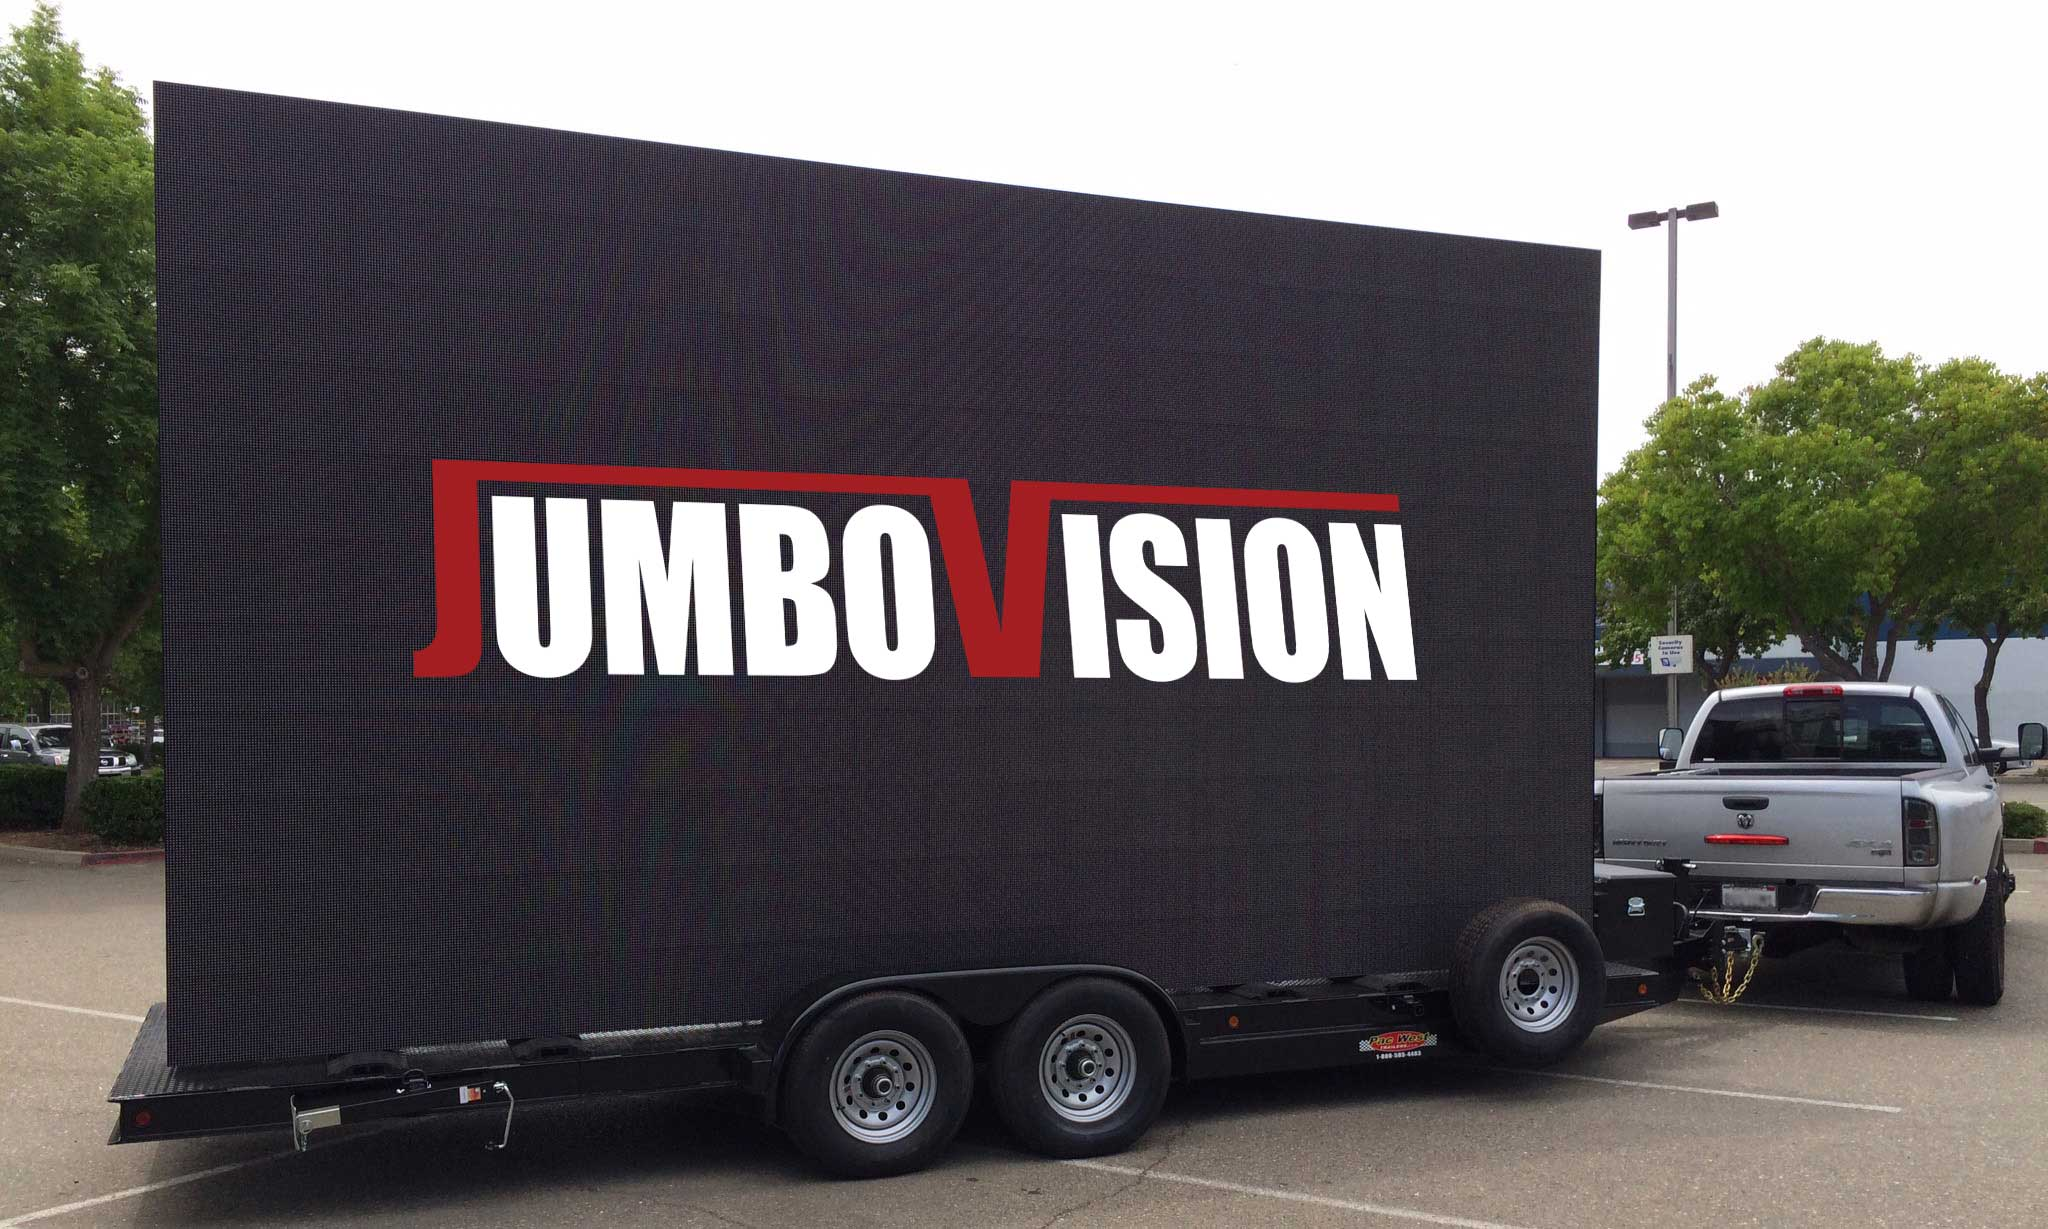 JumboVision Mobile LED Screen Trailer